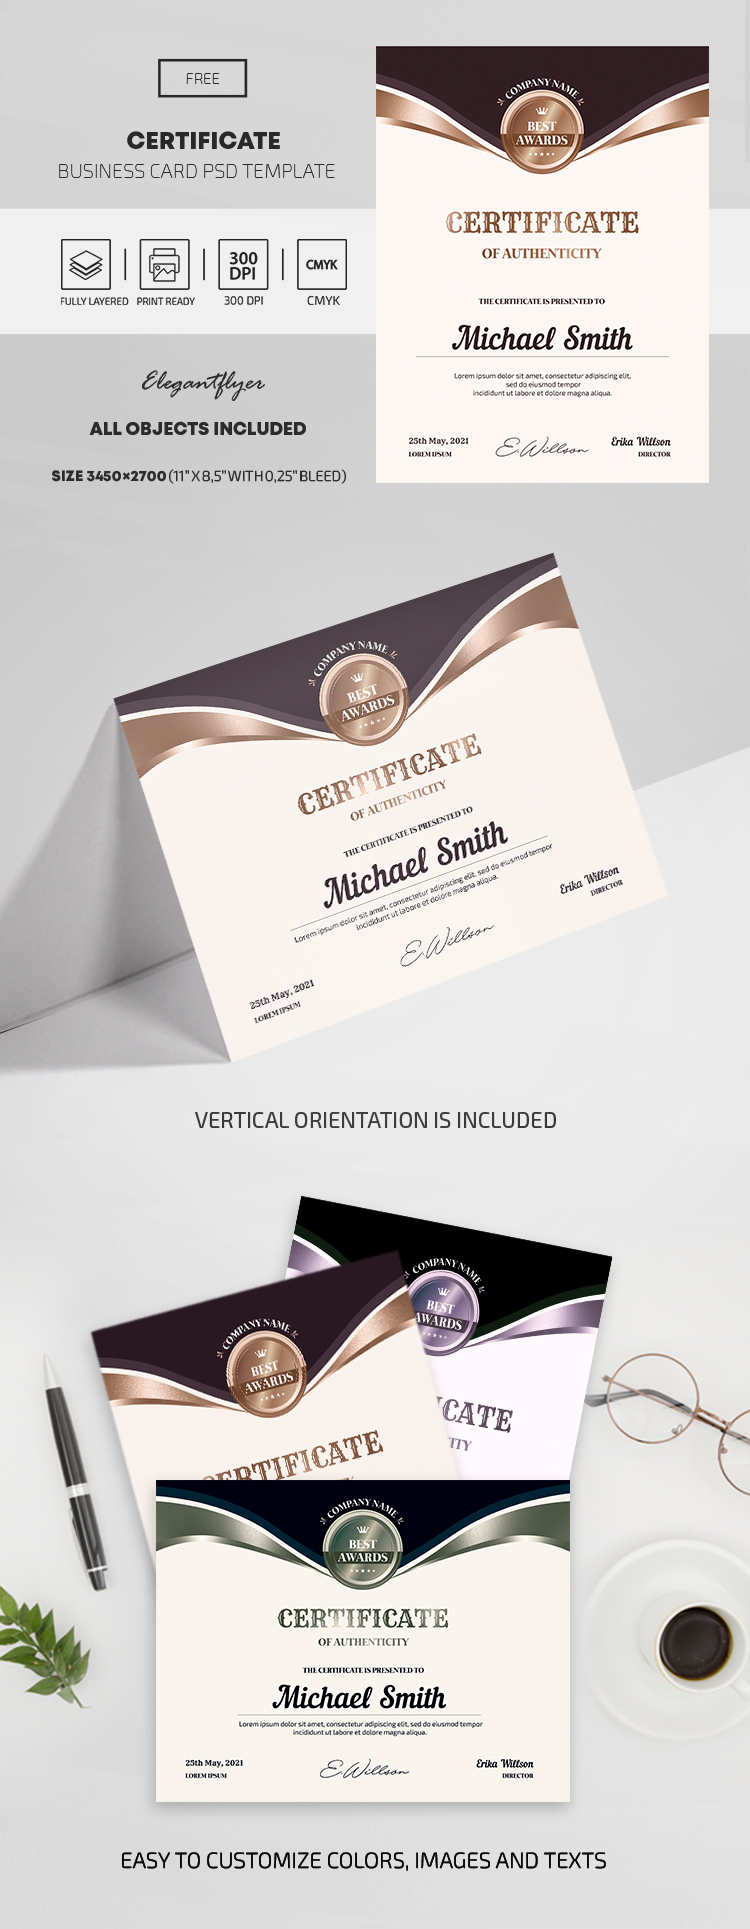 Free Authentic Certificate PSD Template